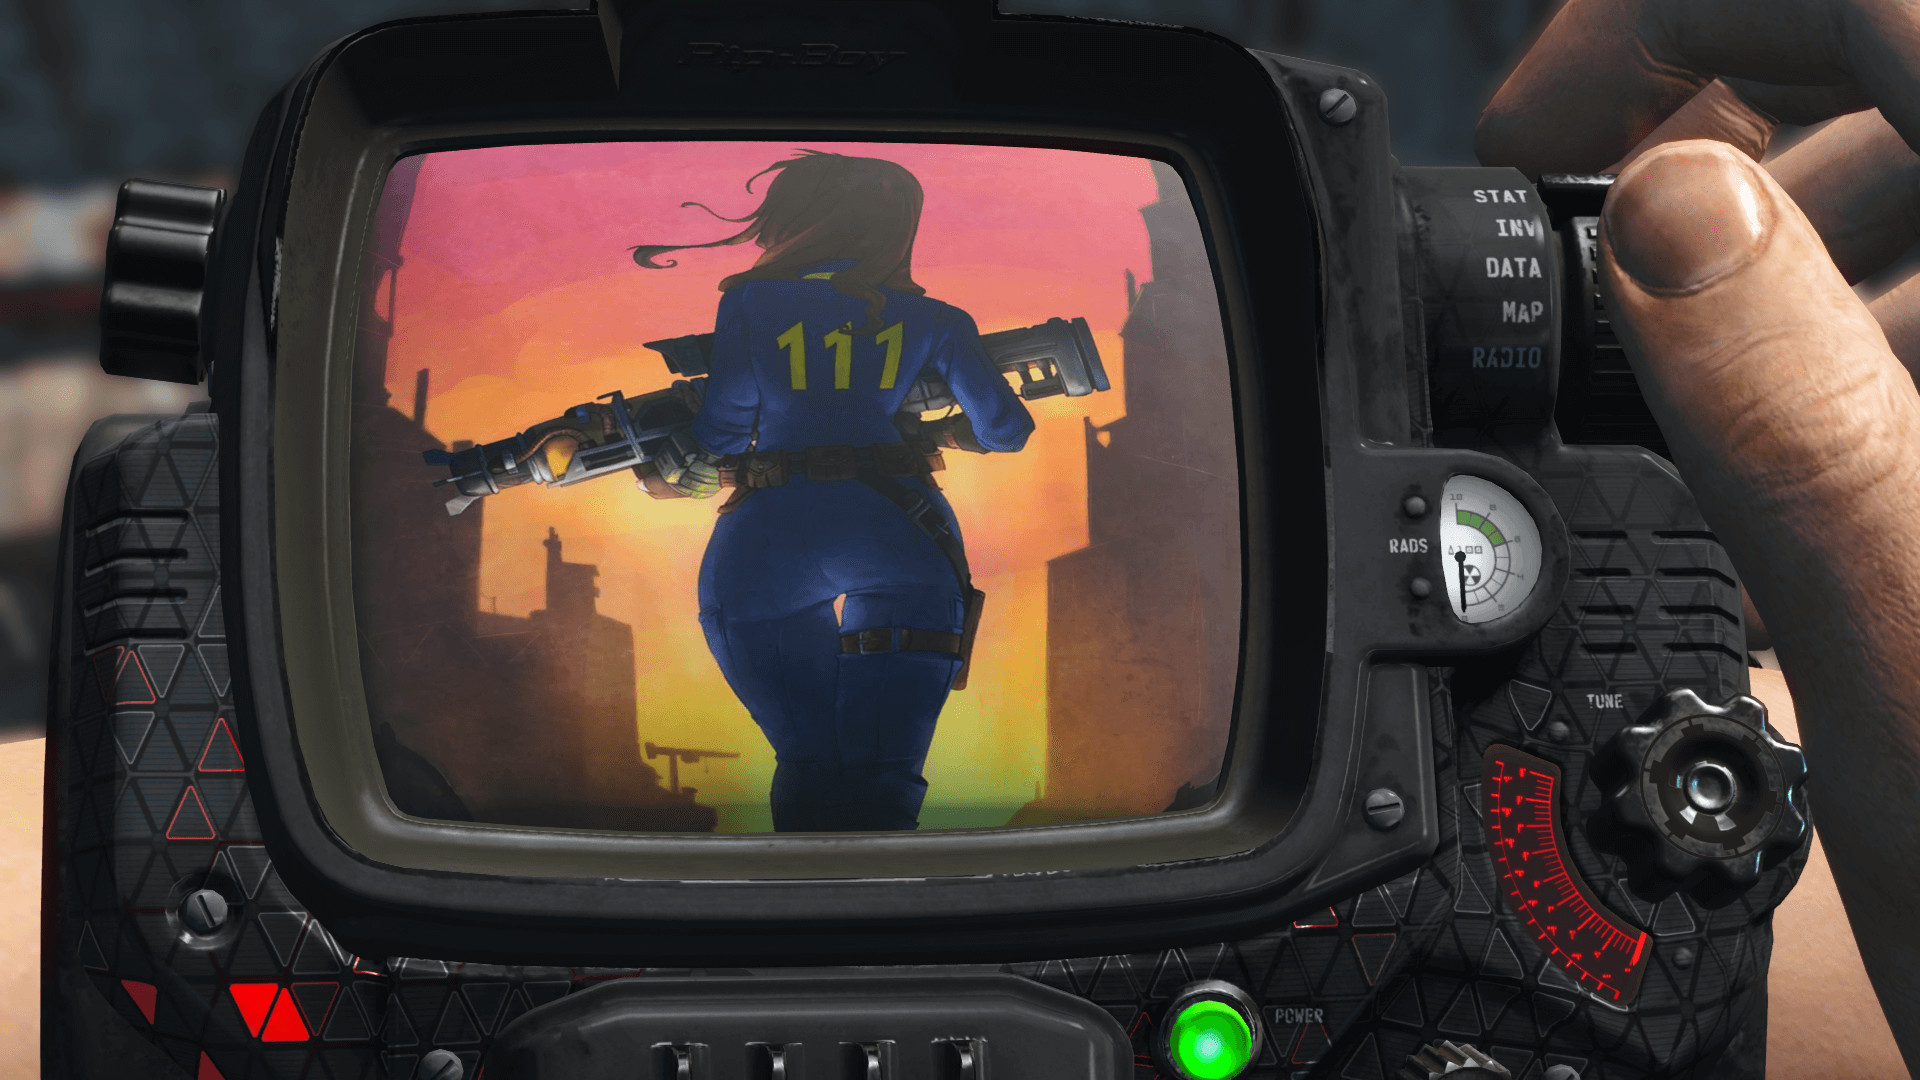 Sexy Fallout 4 Wallpapers for Desktop (px, 0.58 Mb)